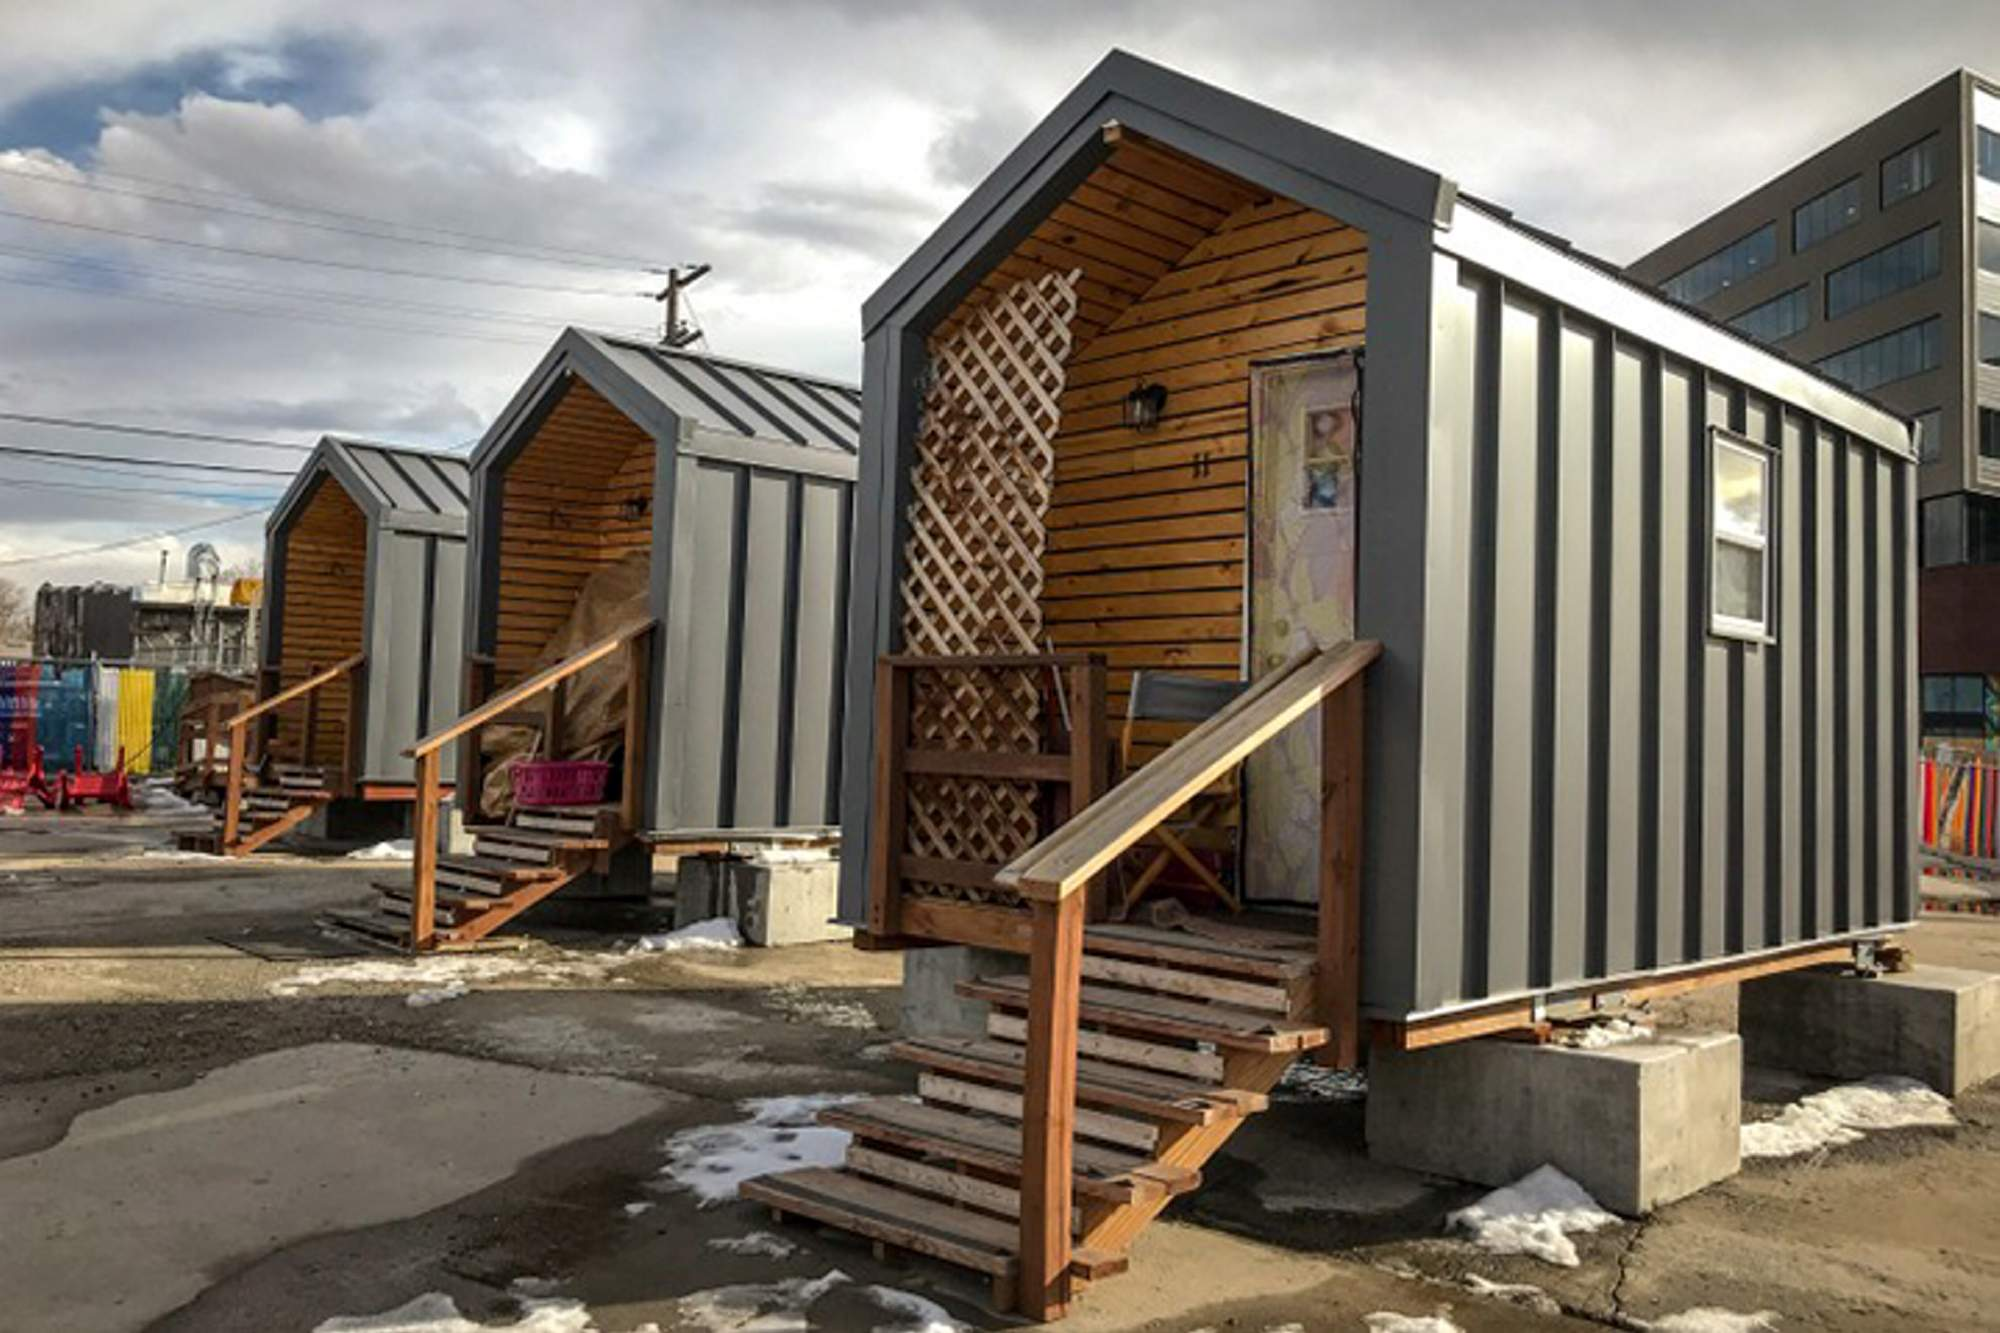 While Denver S Tiny Homes For The Homeless Help They May